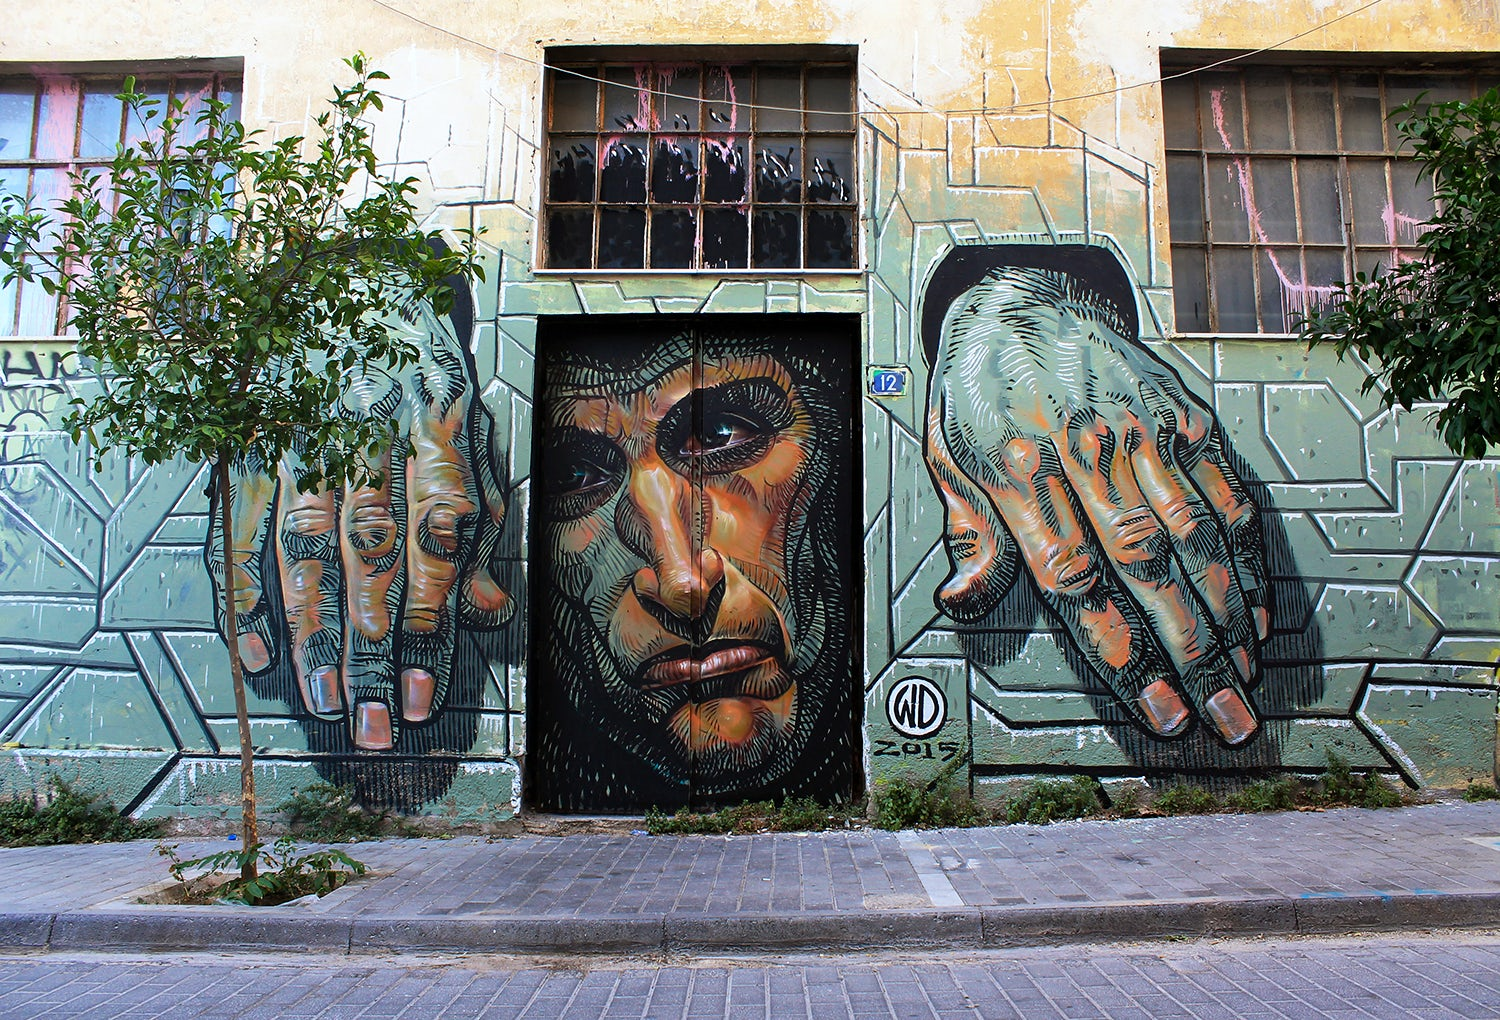 Street Art & Counterculture in Exarchia